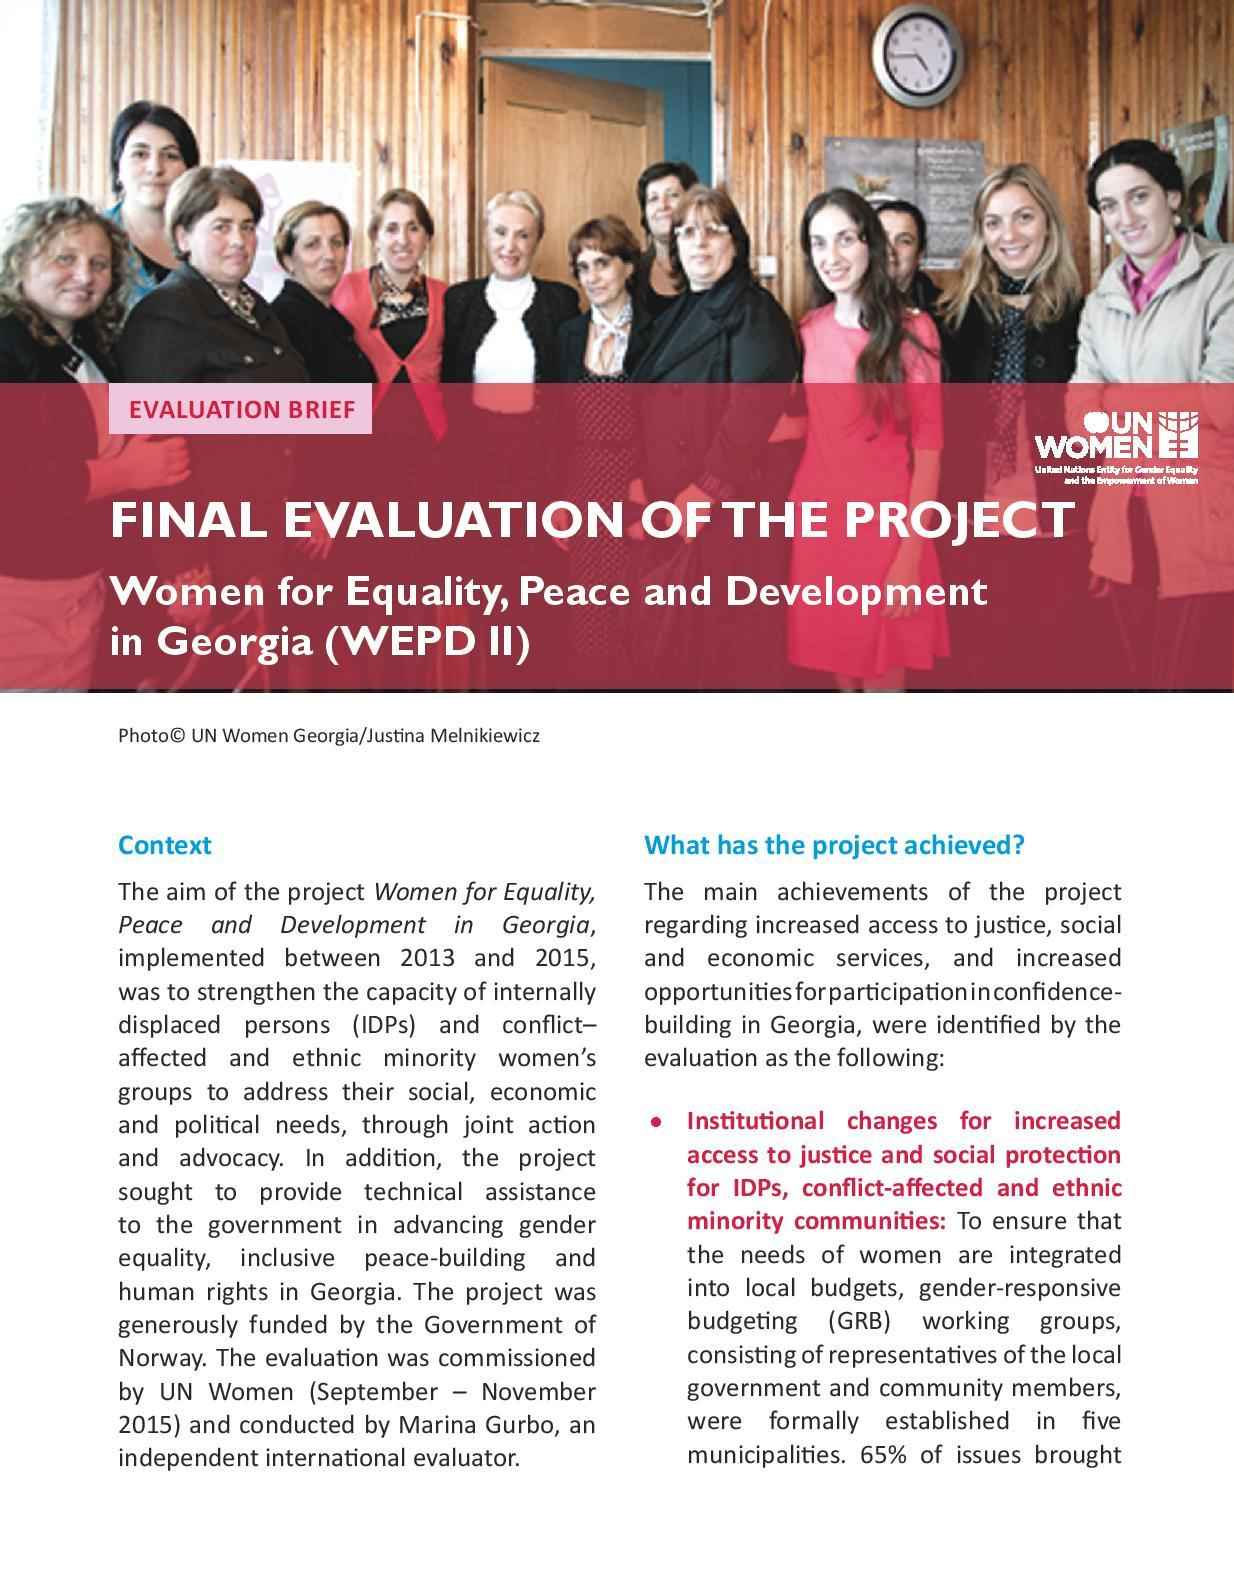 Final Evaluation of The Project Women for Equality, Peace and Development in Georgia (WEPD II)